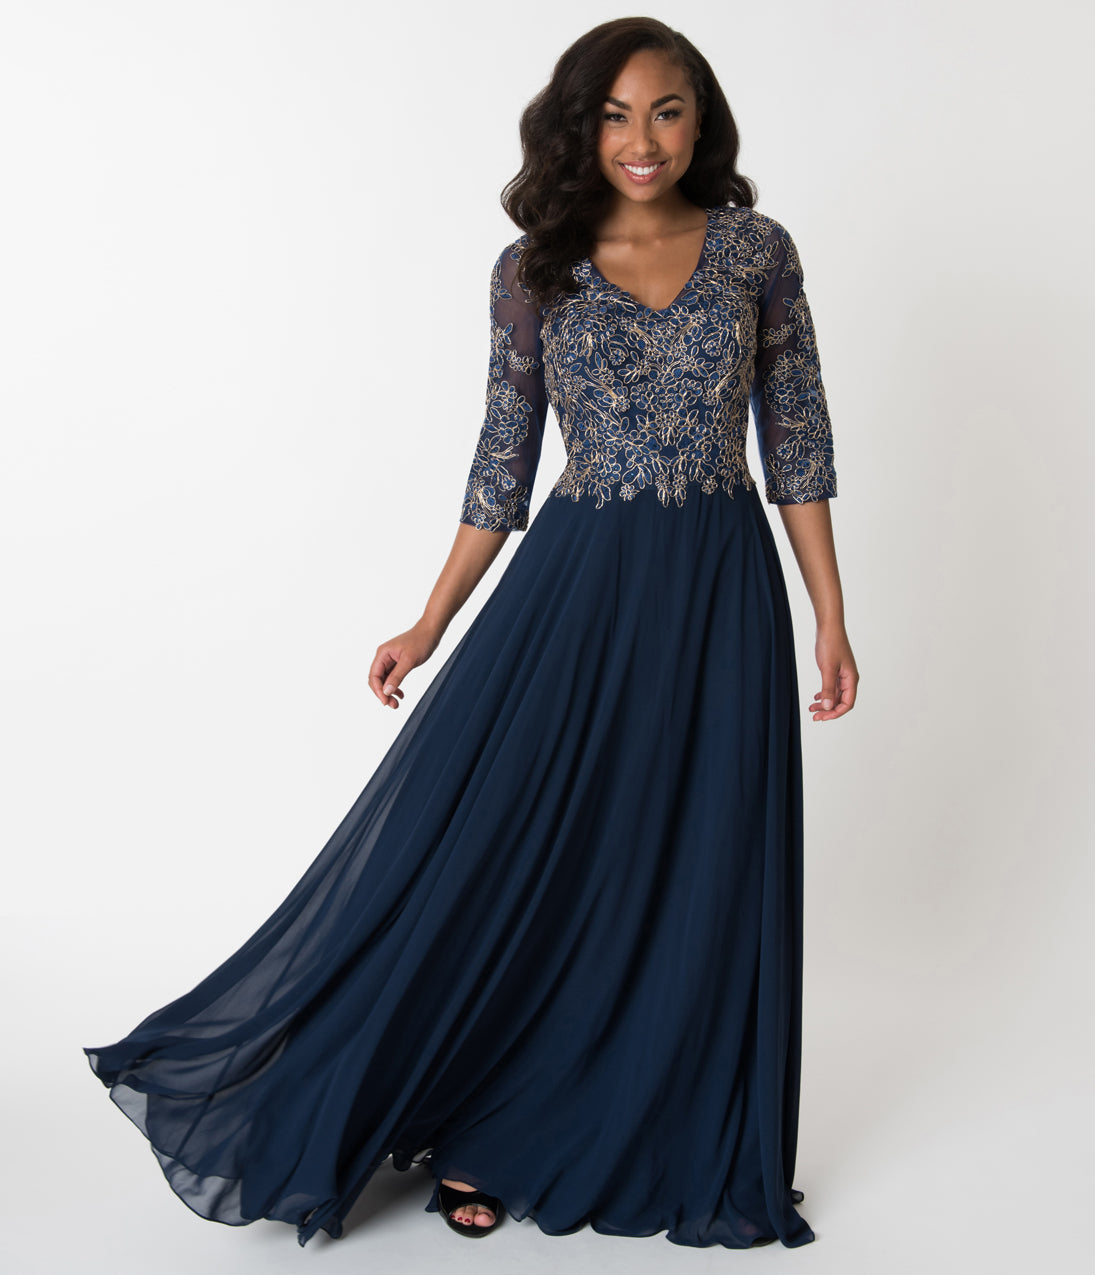 1940s Evening, Prom, Party, Cocktail Dresses & Ball Gowns Navy Blue  Gold Embellished Appliqué Sleeved Chiffon Gown $168.00 AT vintagedancer.com